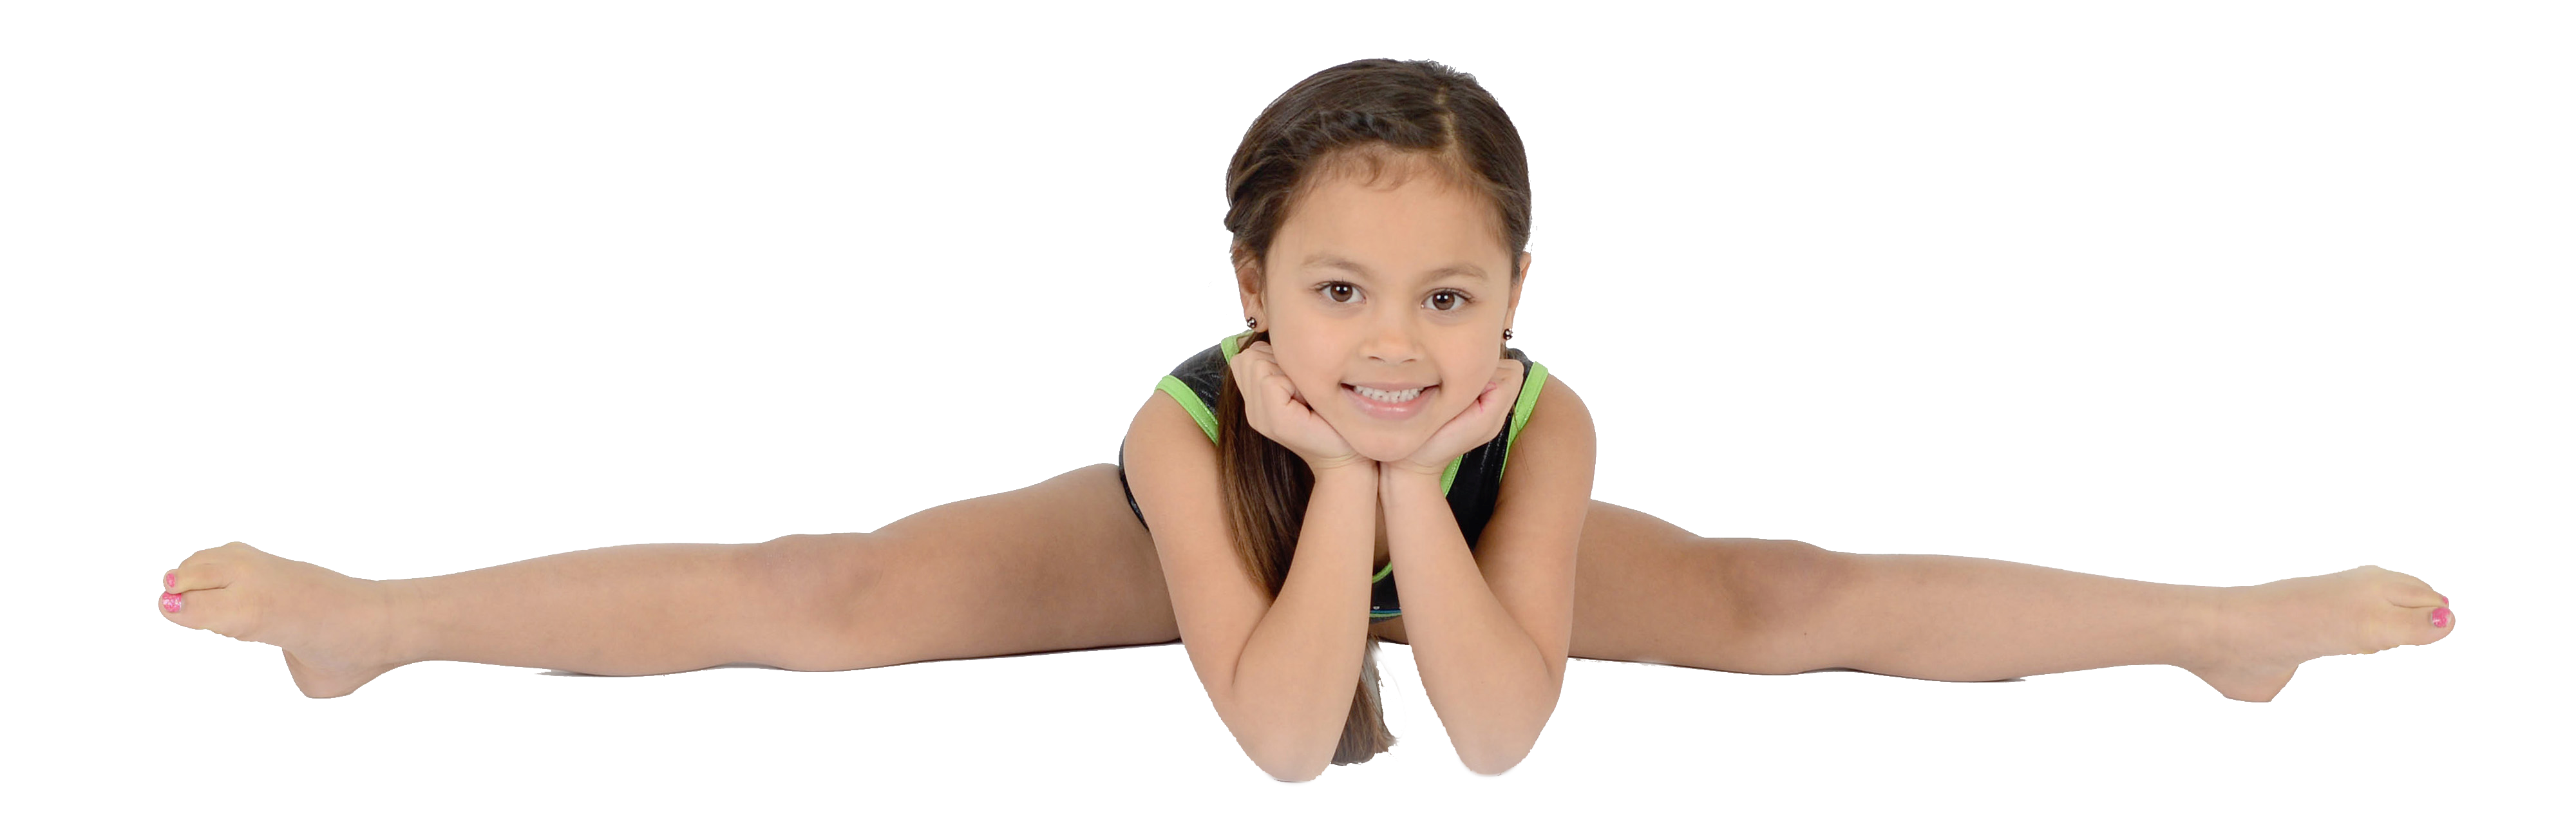 Png splits transparent images. Gymnast clipart gymnastics team